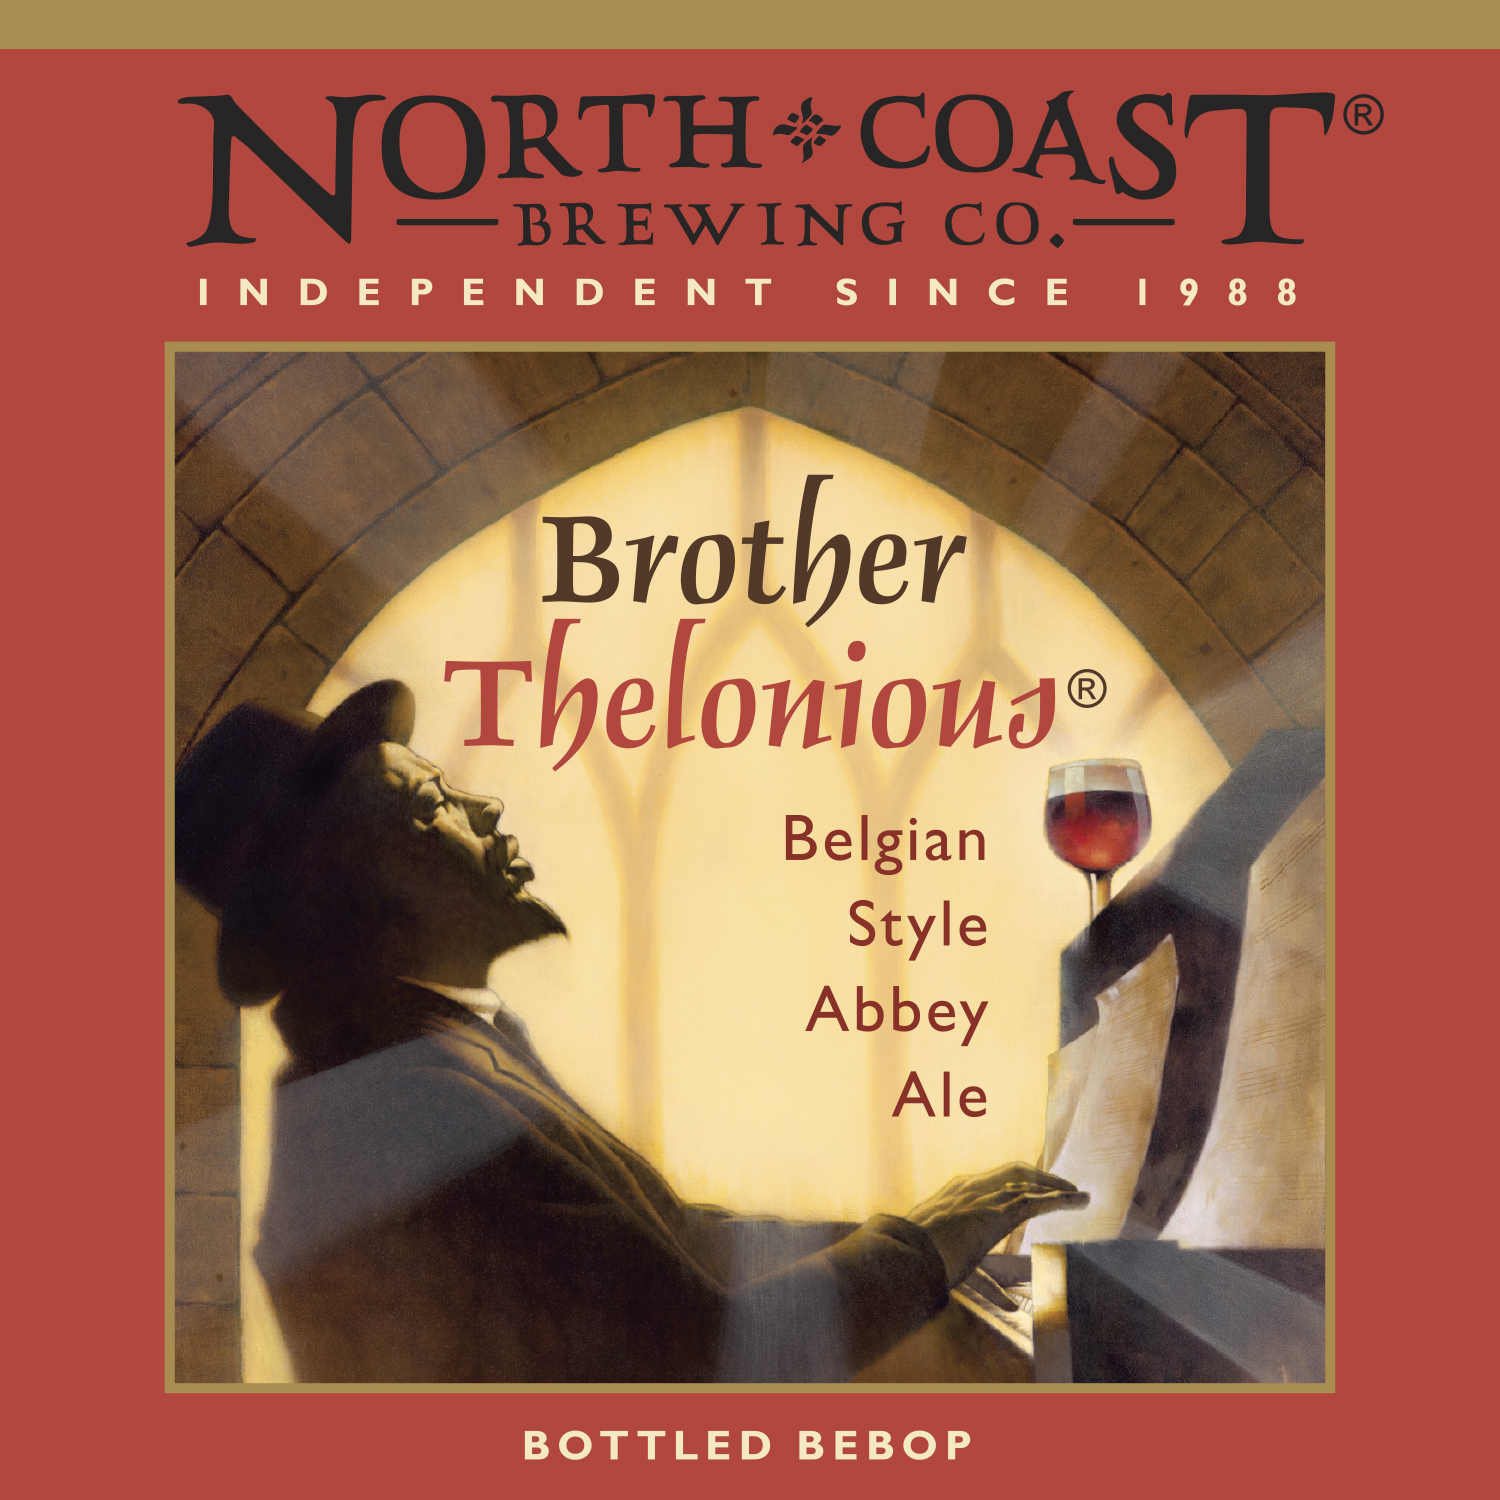 North Coast Brewing -Brother-Thelonious-Brand-Image-2019